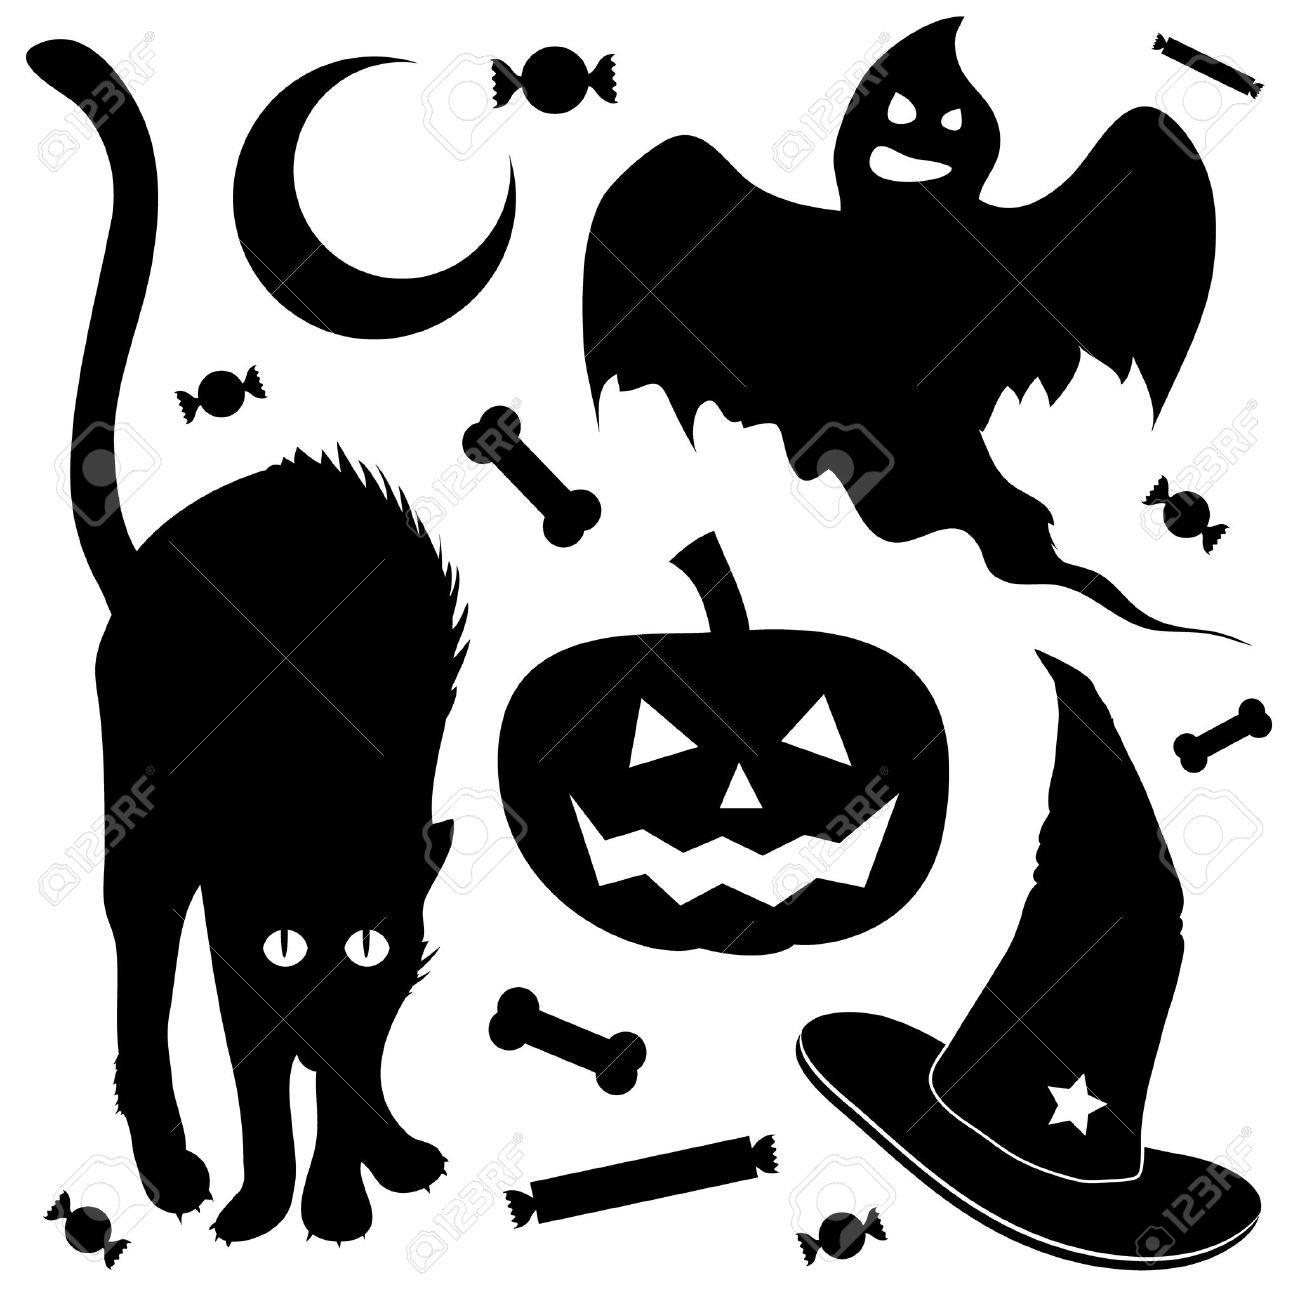 Halloween Design Elements Silhouette Set. Includes Black Cat.